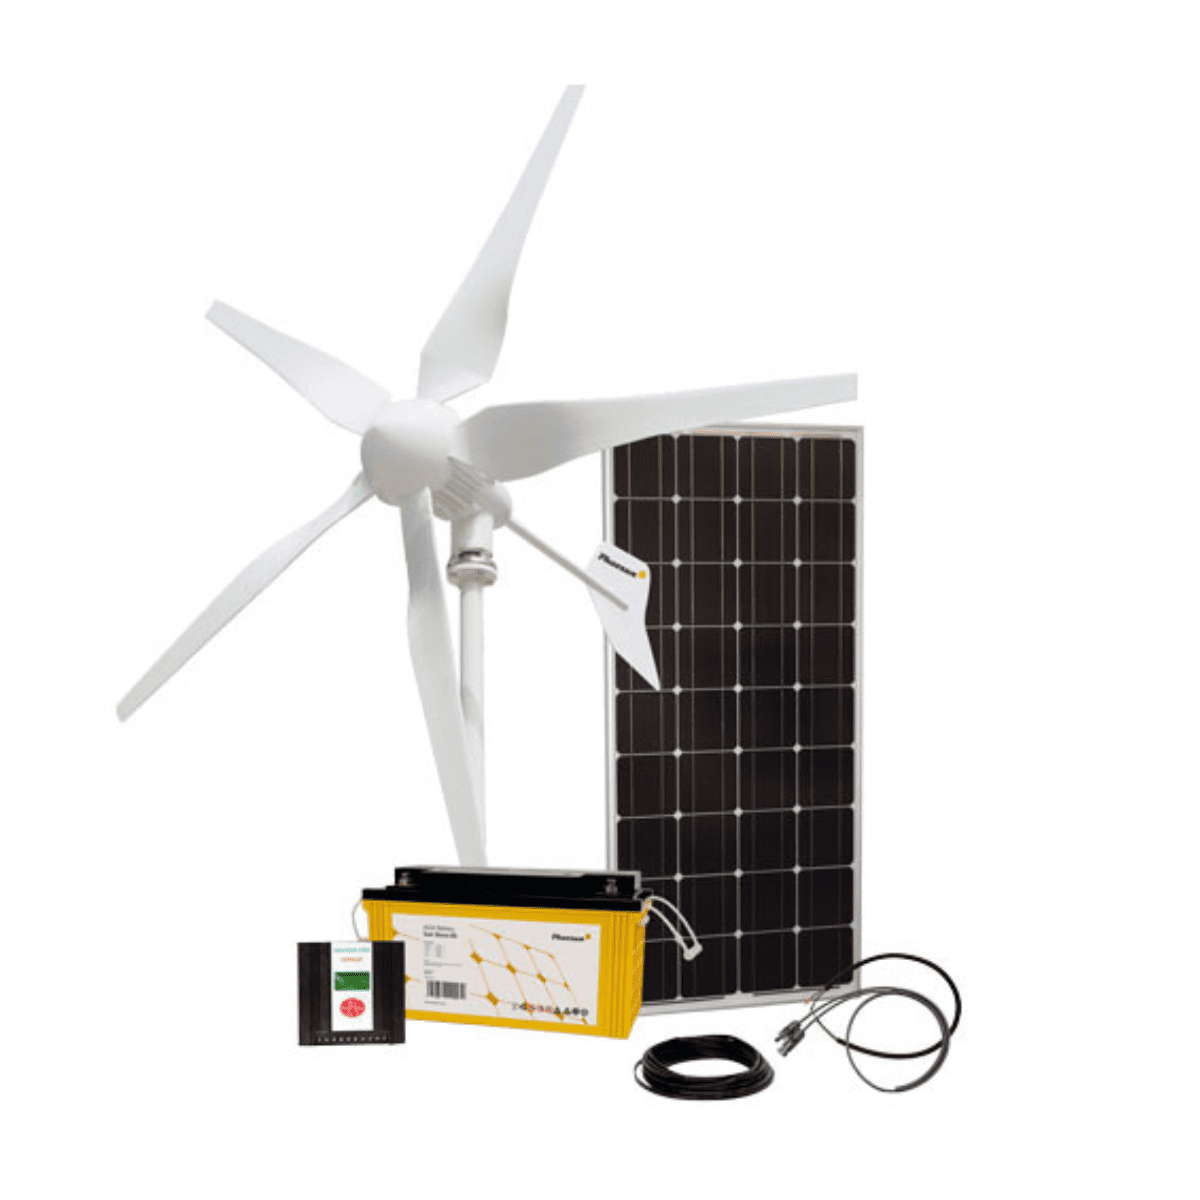 Phaesun 12V 500W Wind Turbine Kit with 100W Solar Panel on Sale